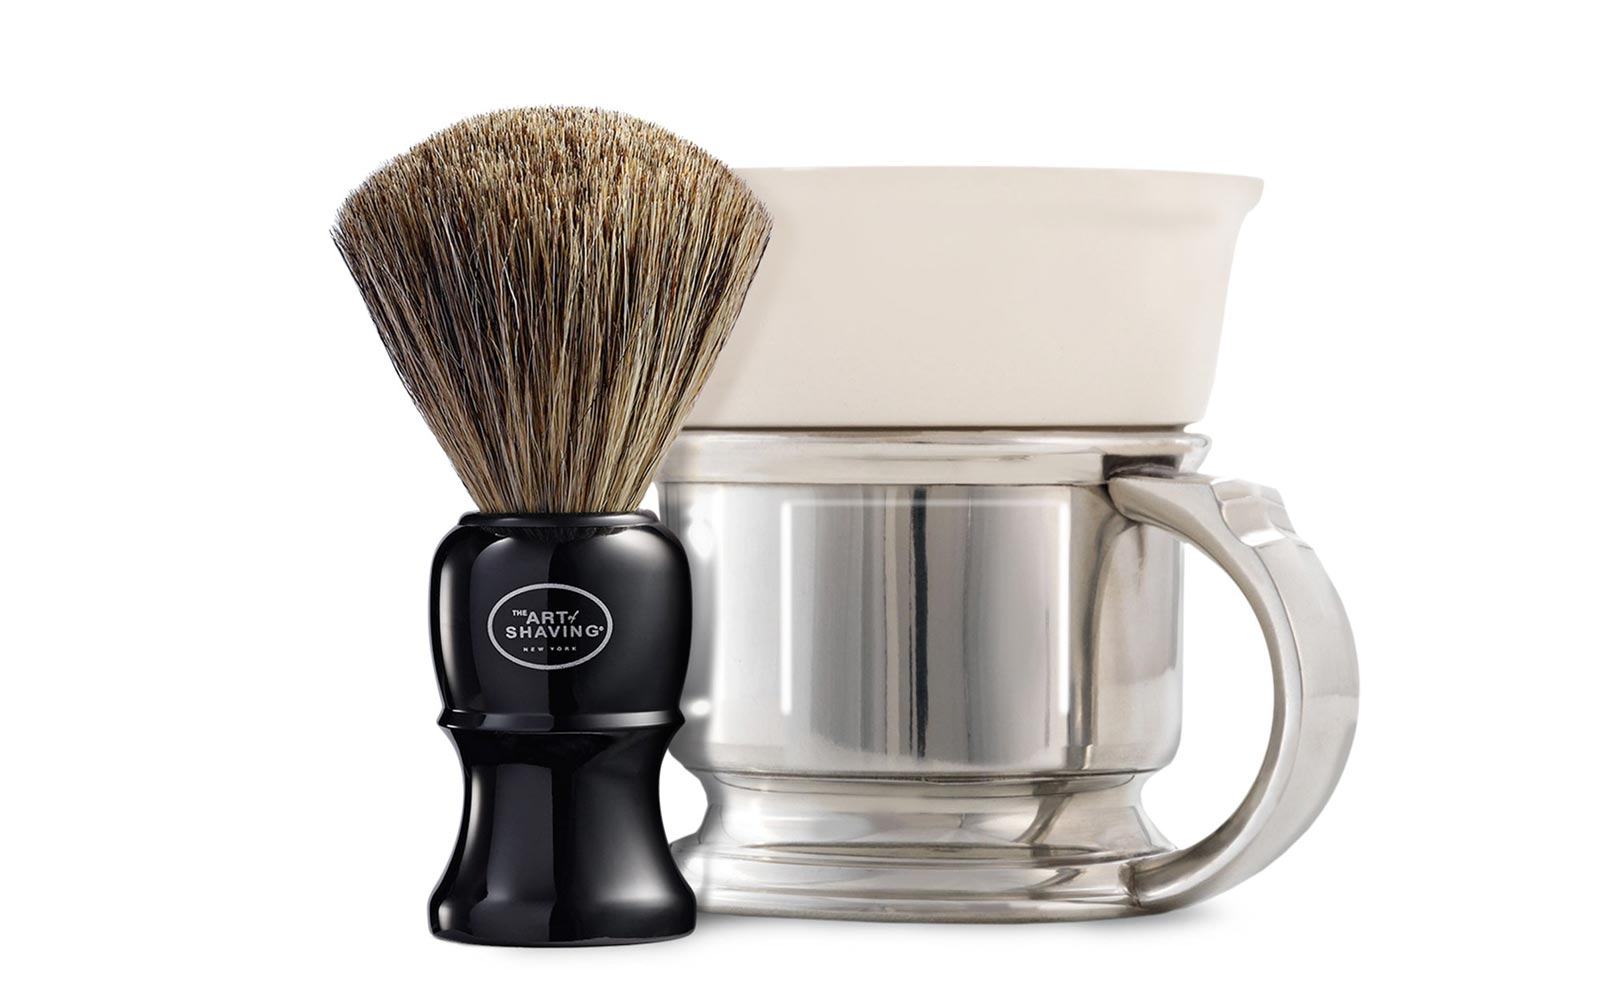 The Art of Shaving Mug and Brush